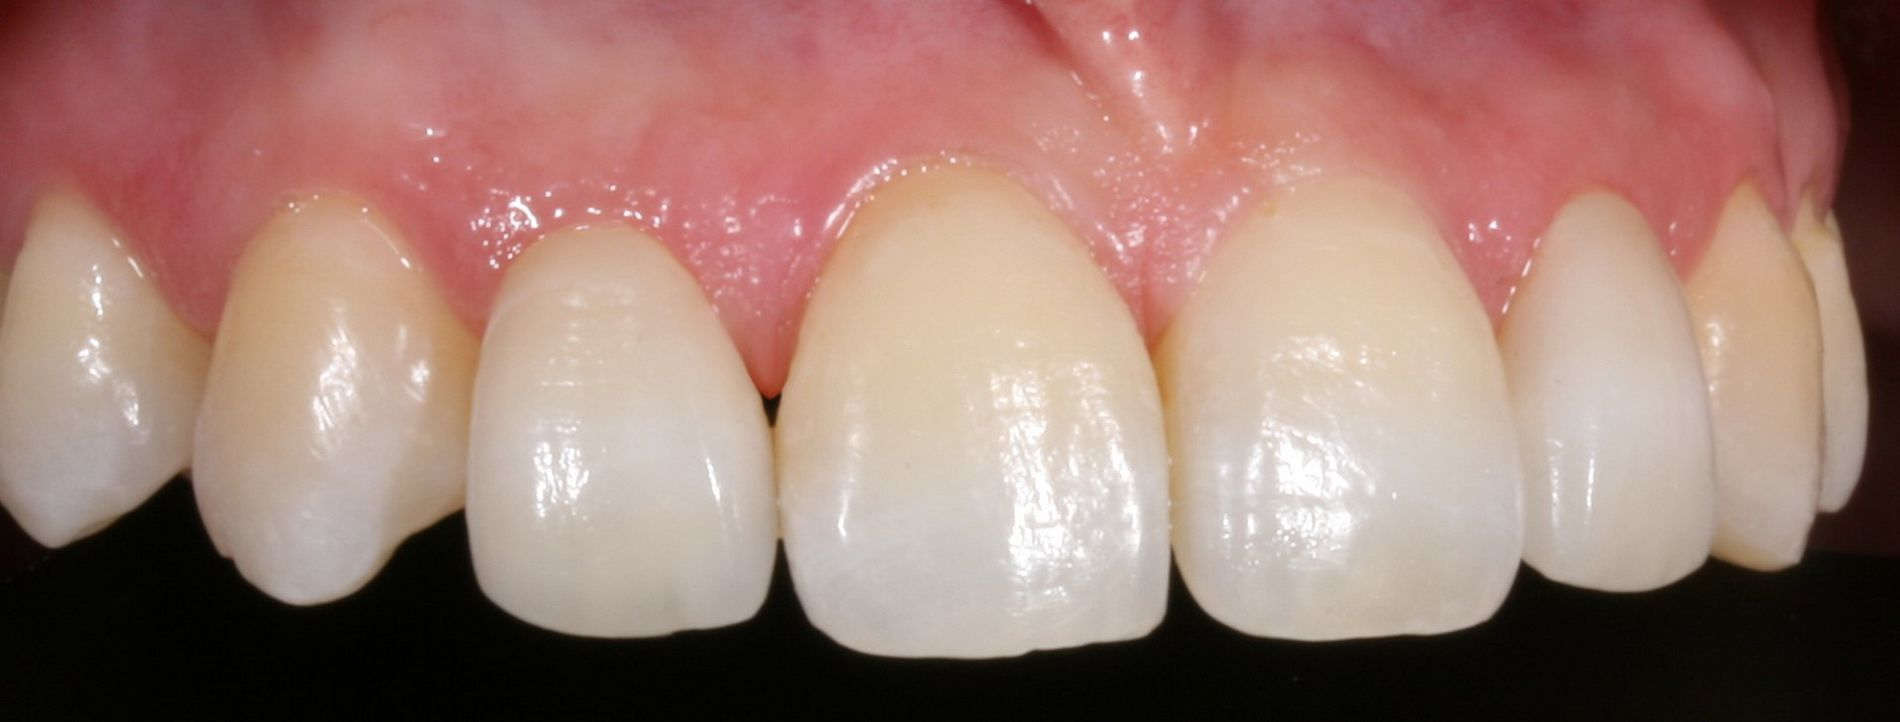 Before treatment with the CEREC 3D system incorporating CAD-CAM technology